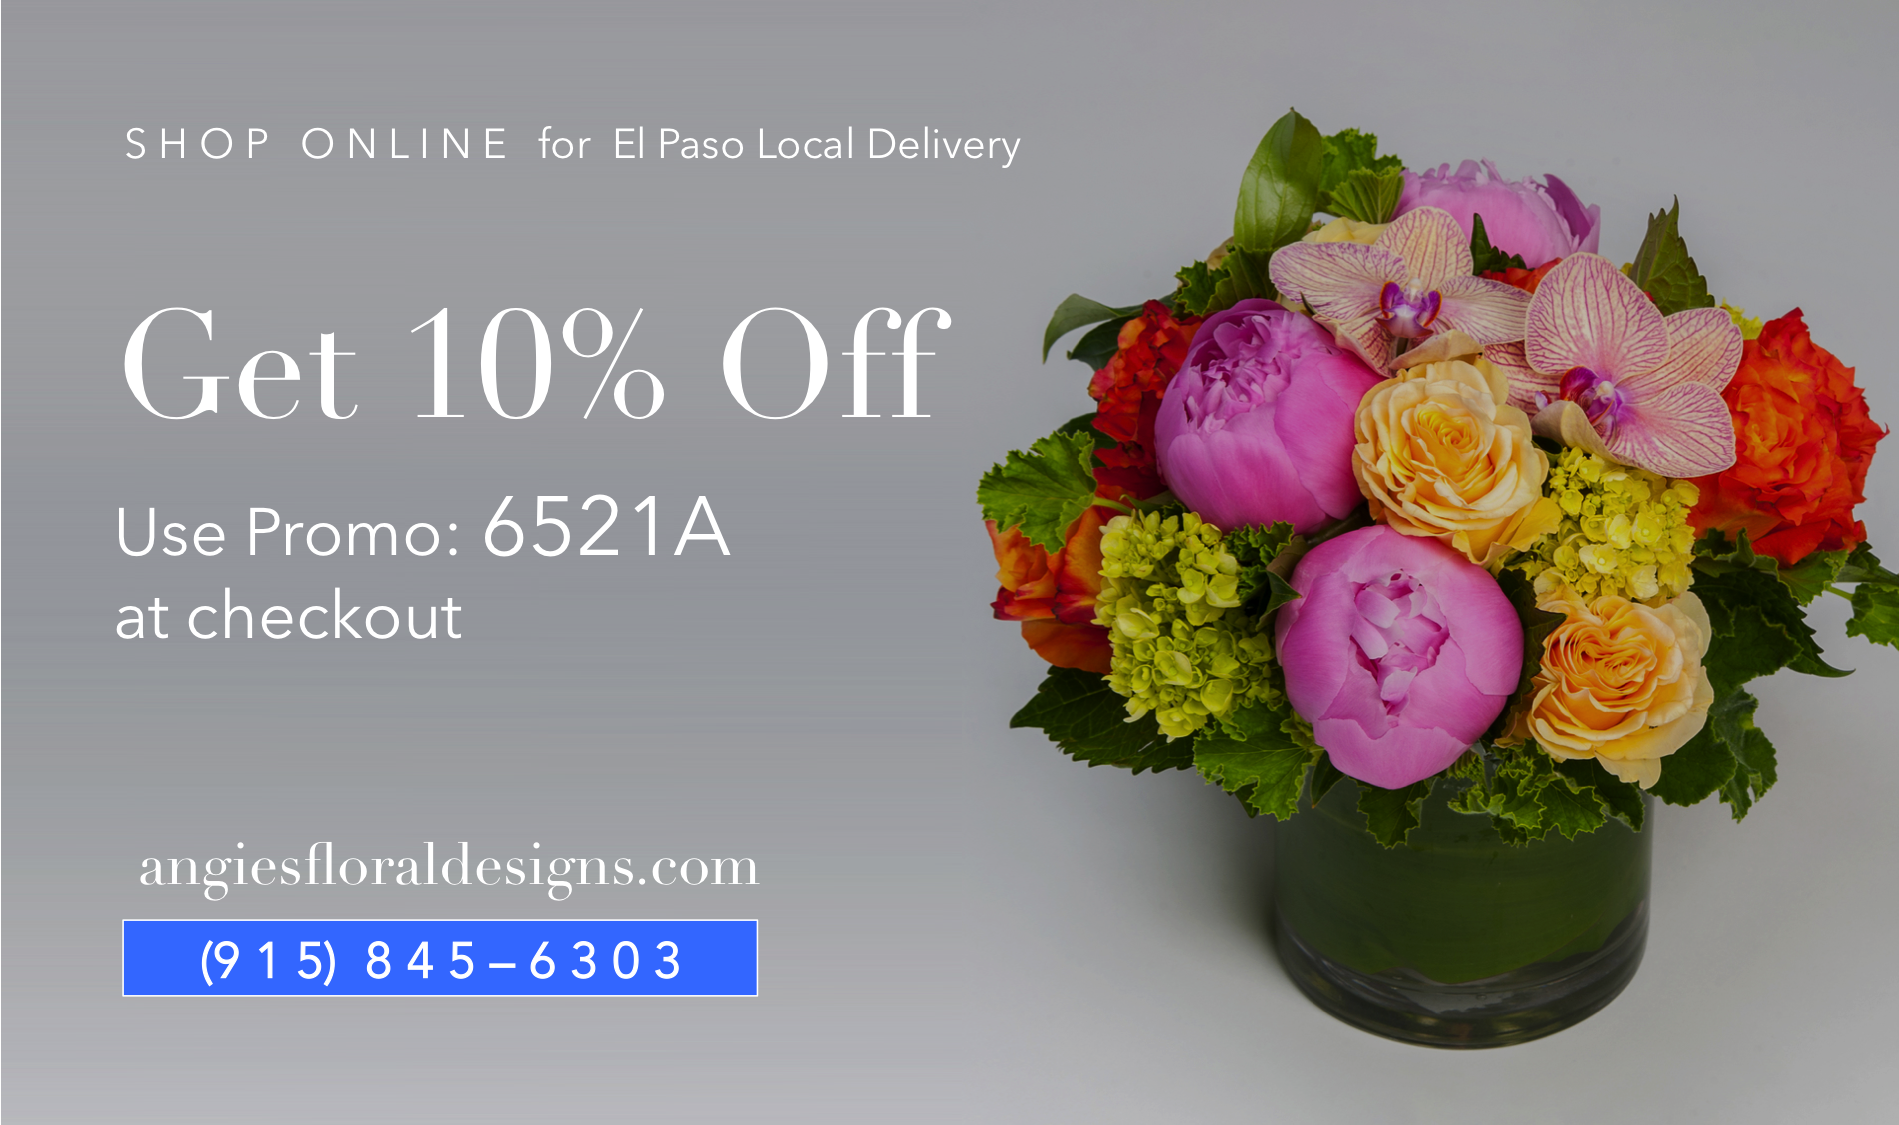 0angies-1floral-designs-el-paso-texas-el-paso-flower-shop-el-paso-texas-angies-flowers-angies-flower-delivery-best-elegant-weddings-bridal-events.png